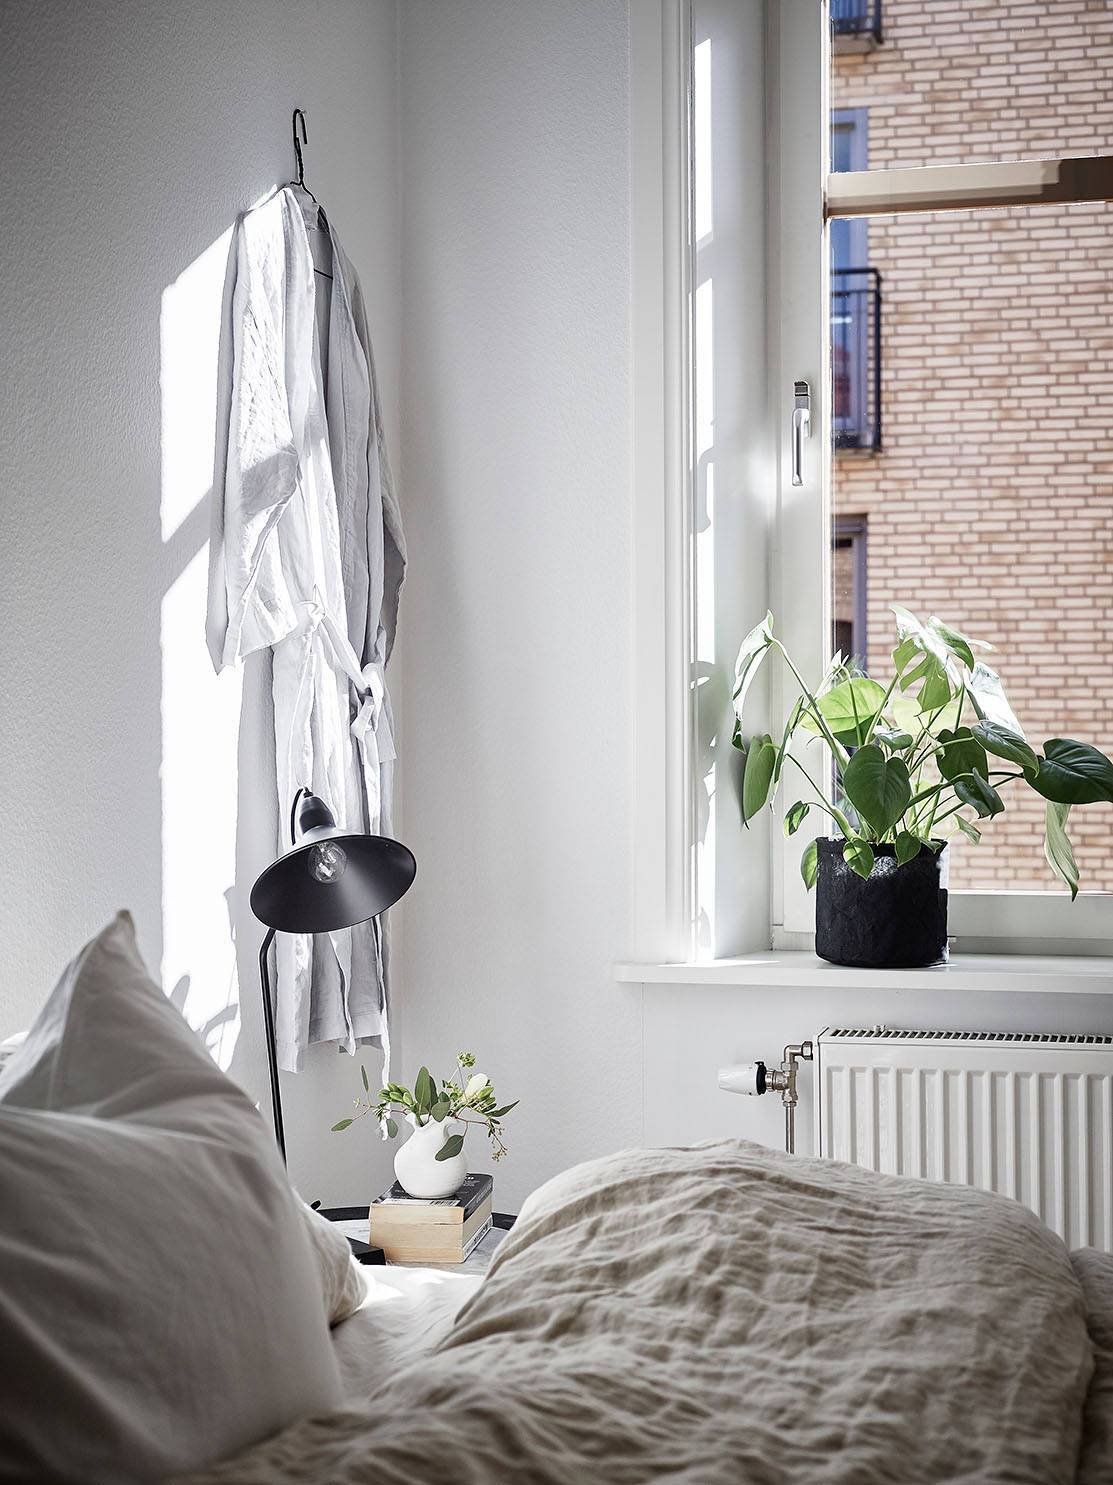 Interior Envy: Inspiring Minimal Bedrooms Monochrome Interior Blog